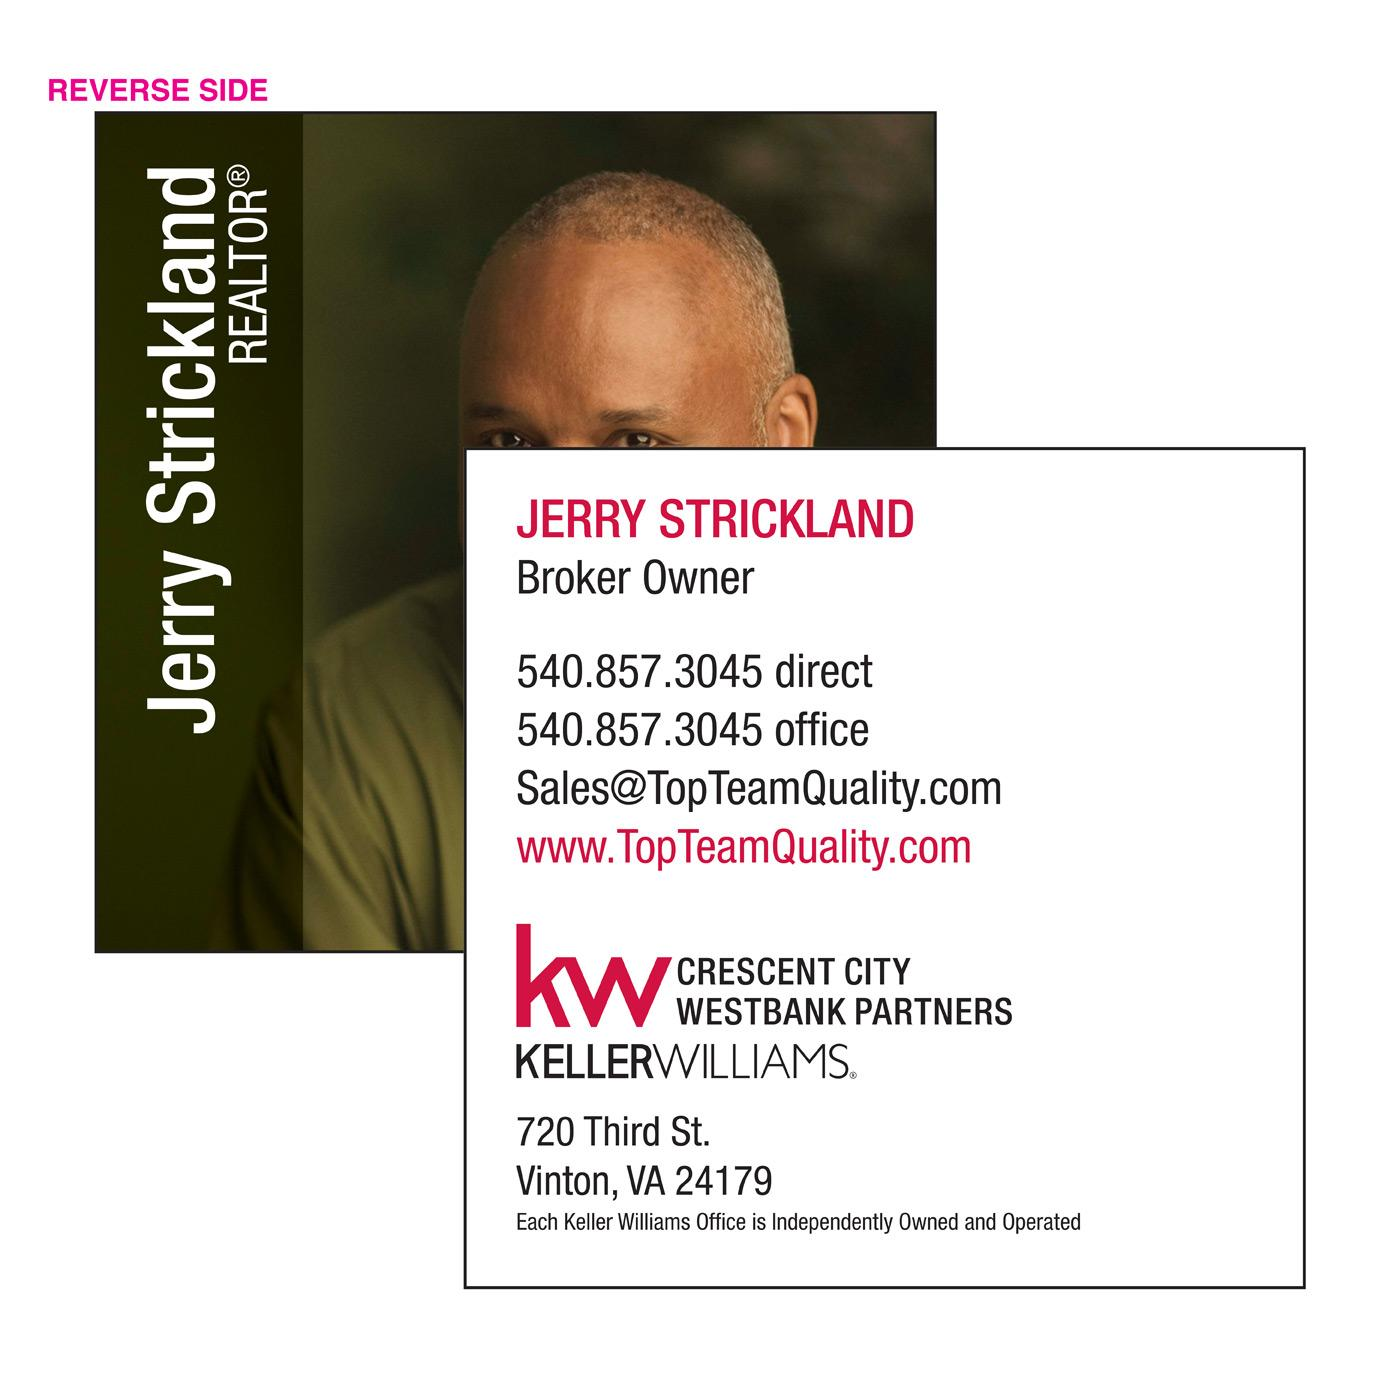 KW Square Business Card